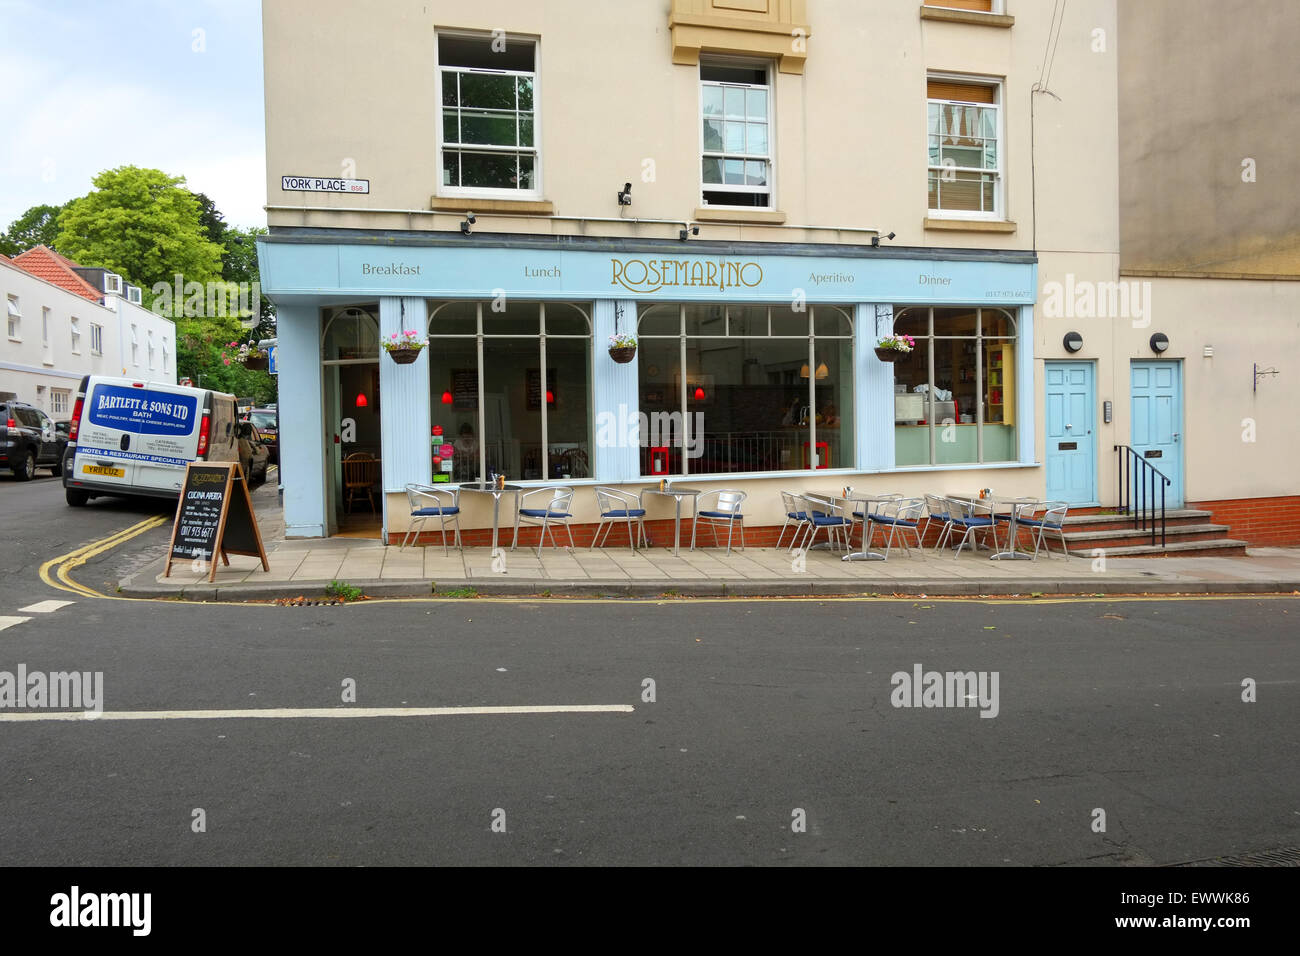 Rosemarino Award wining Italian cafe and restaurant in Bristol, BS8, - Stock Image